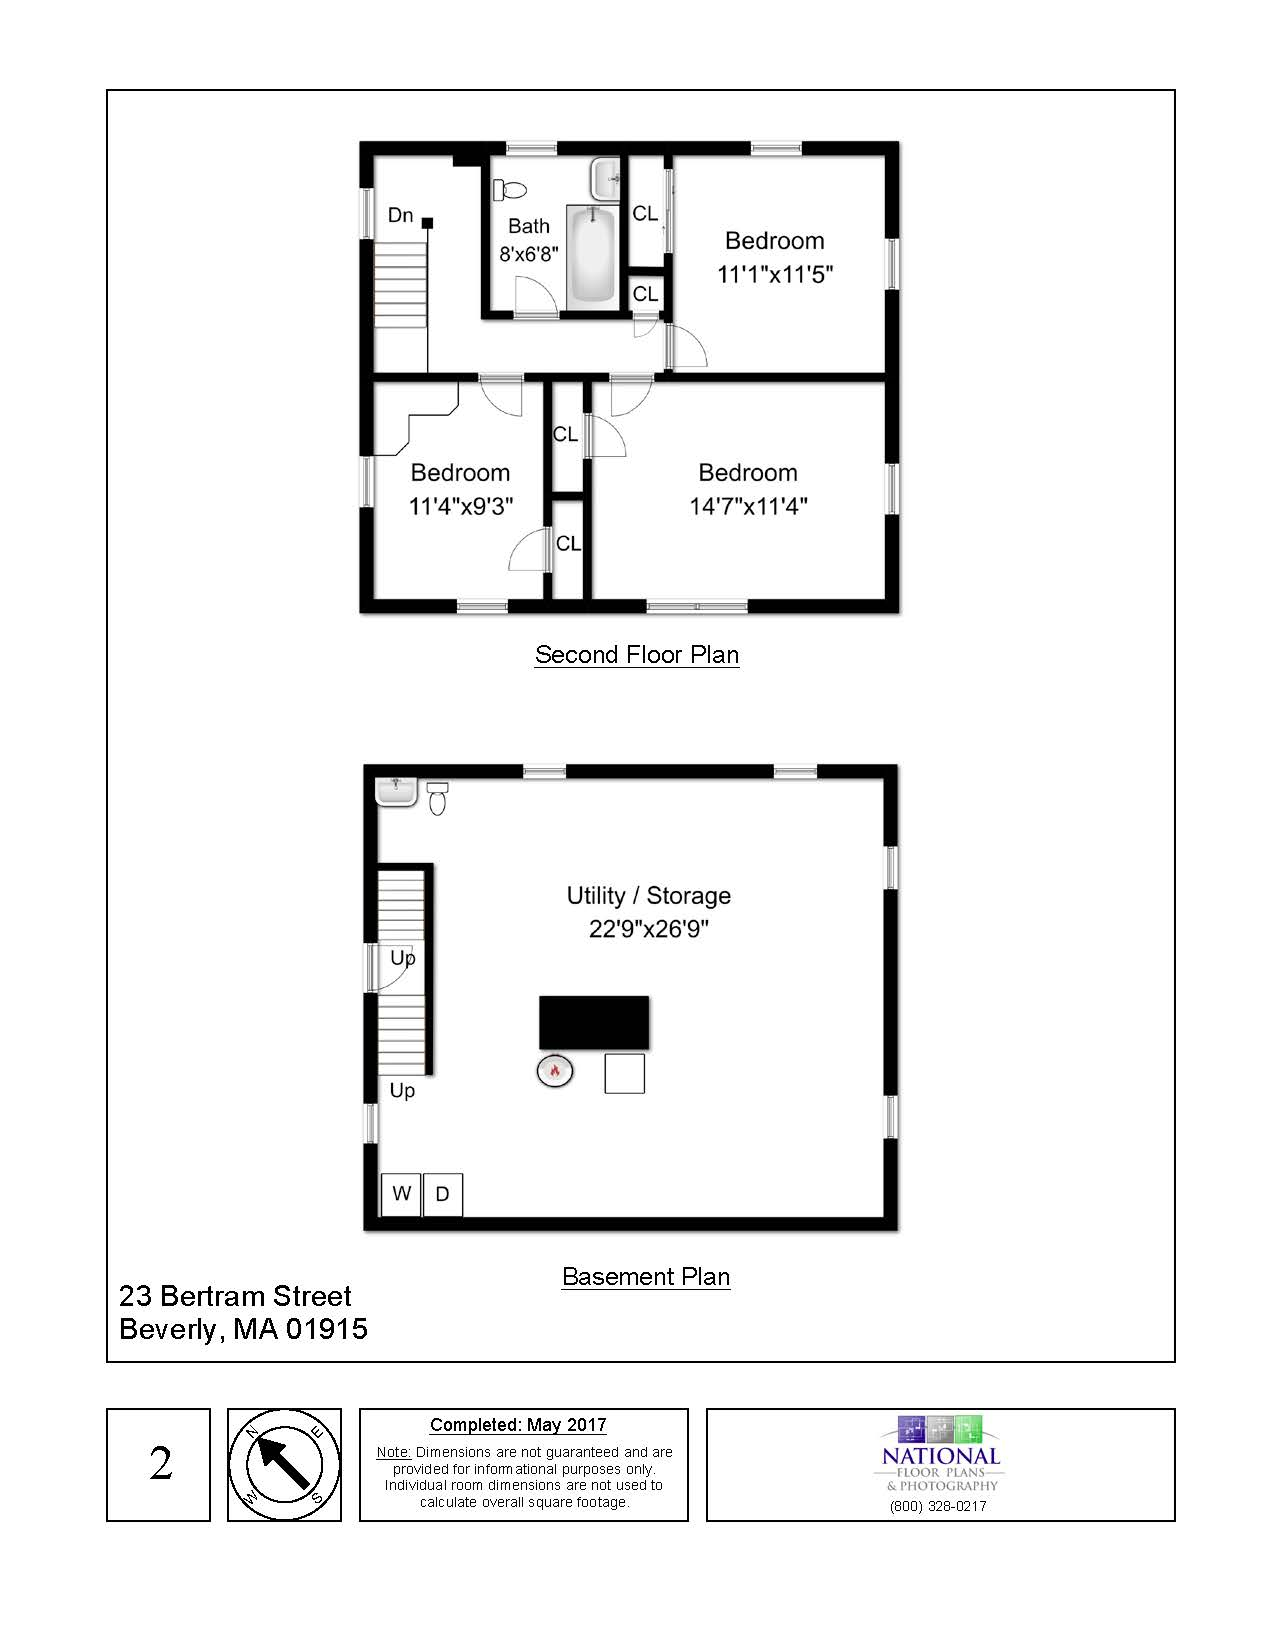 23 Bertram Street, Beverly - Floor plan